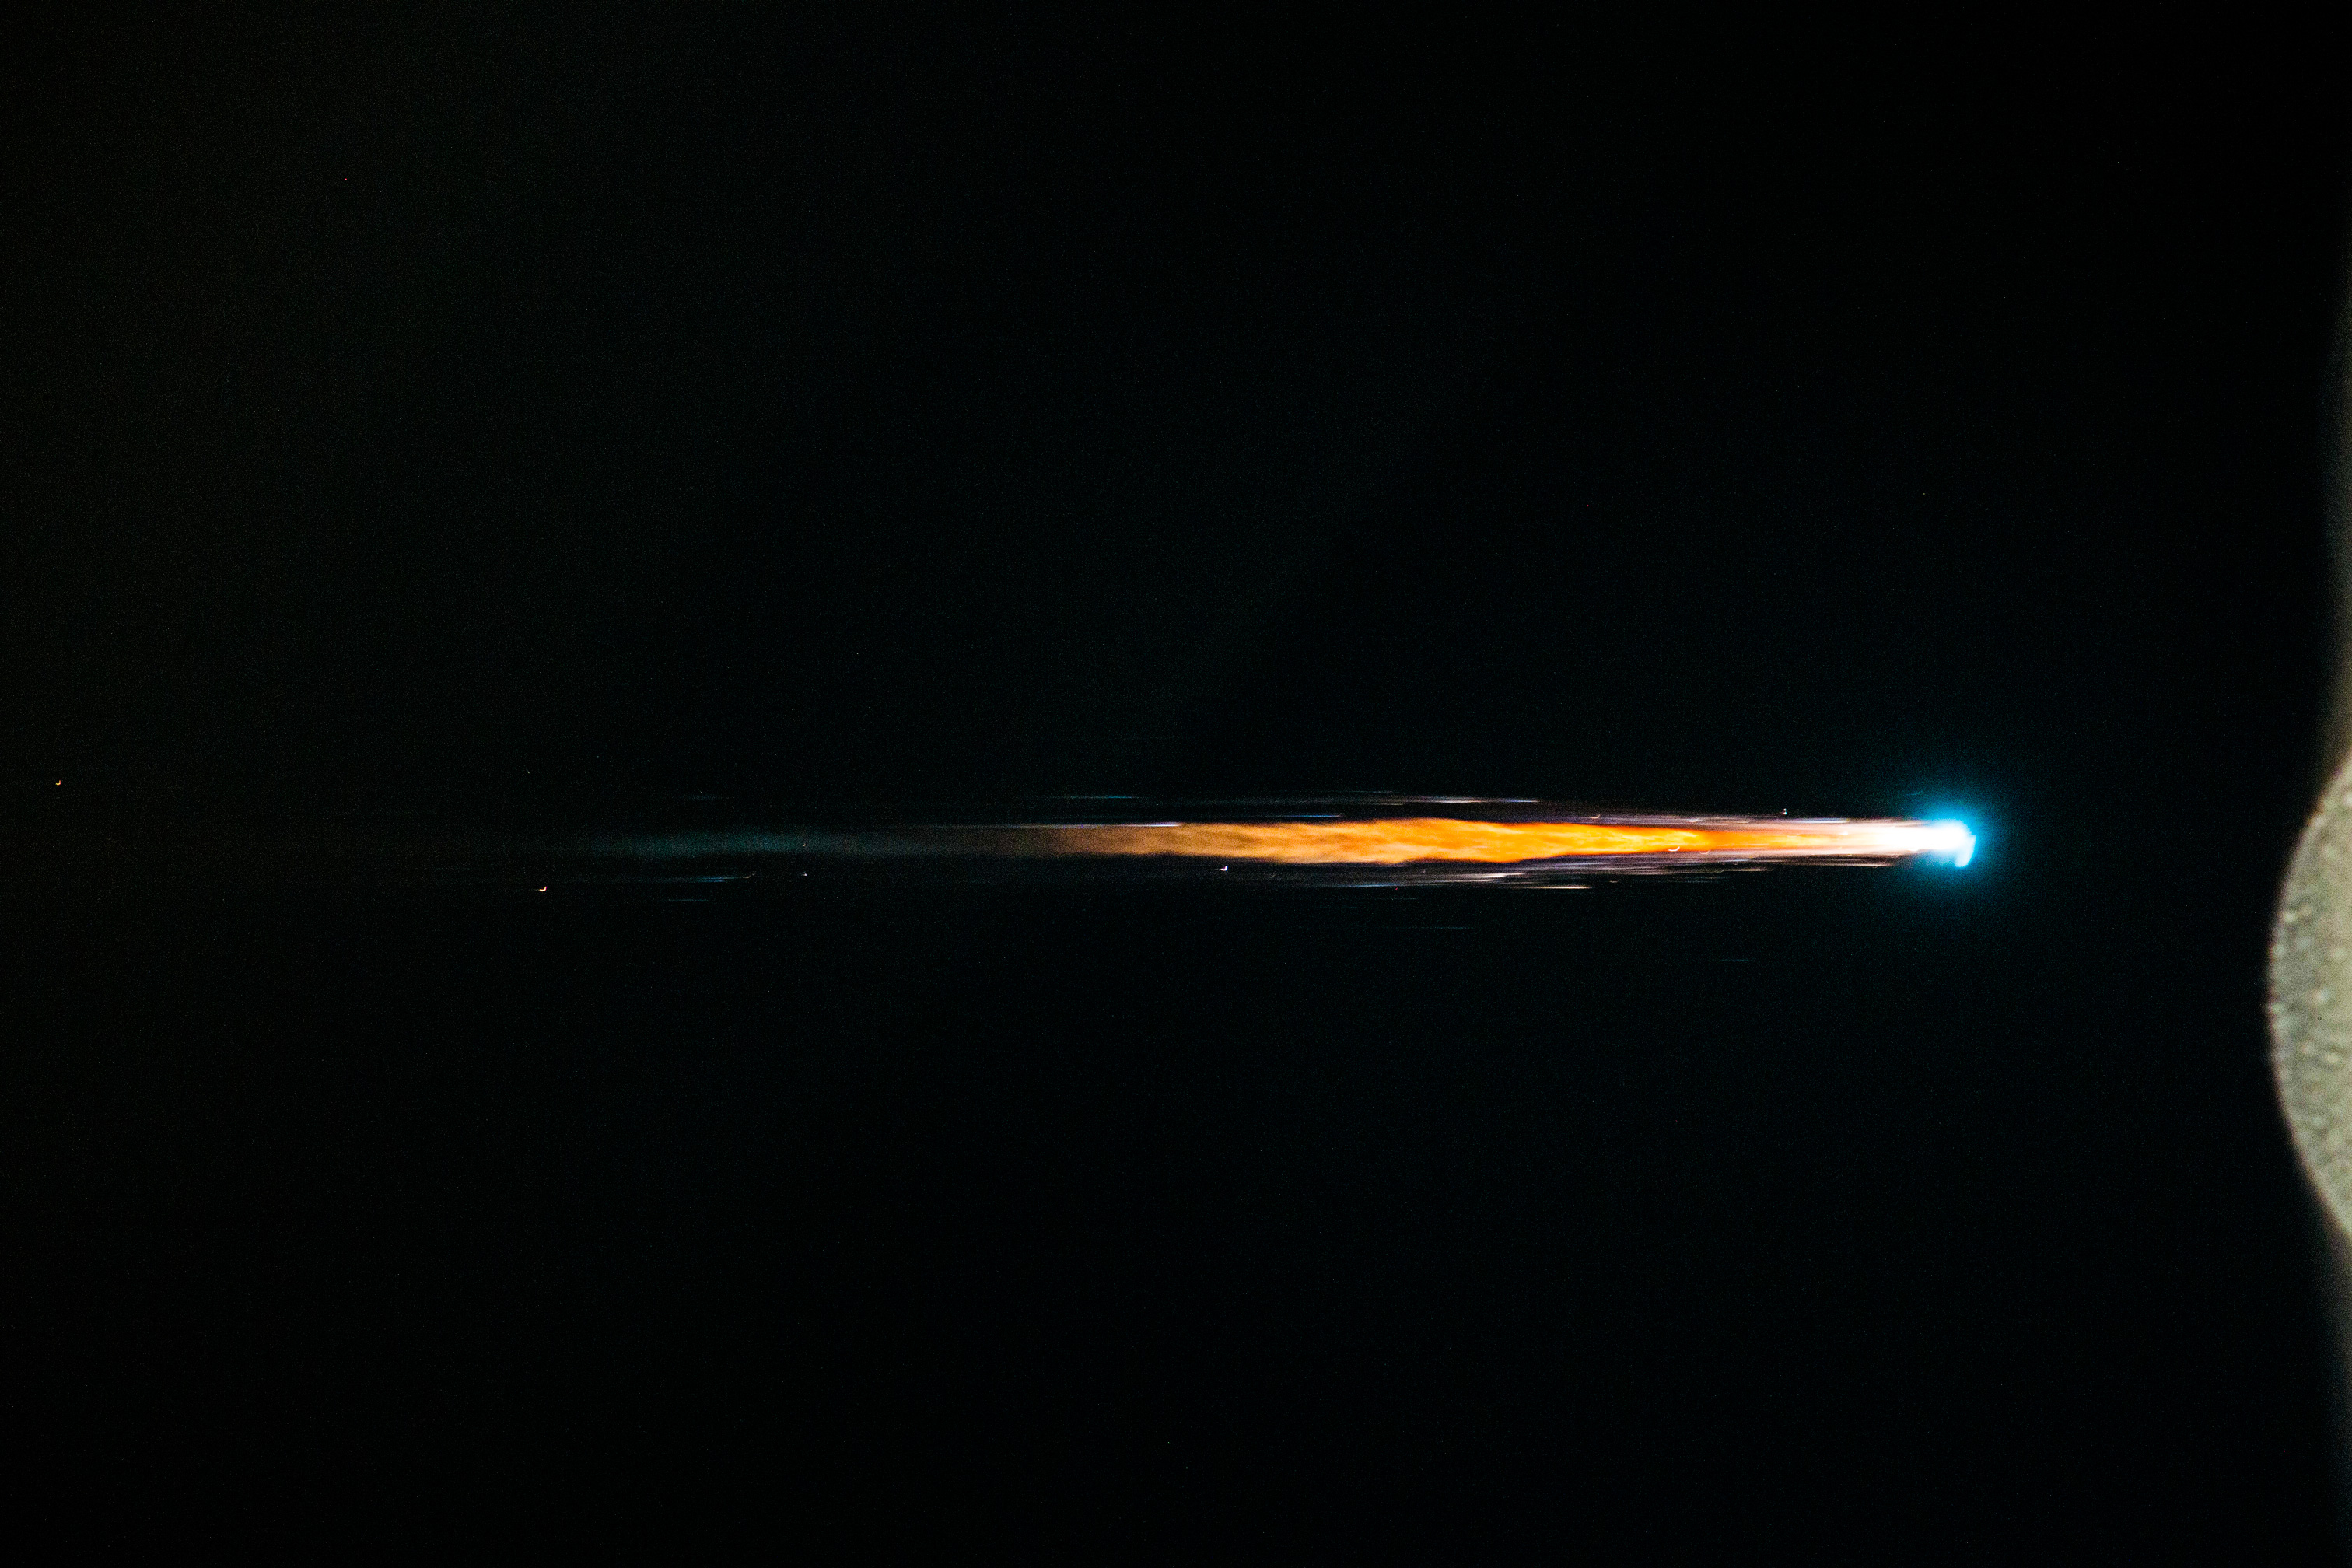 ATV-4 reentry in 2013. Credits: ESA/NASA